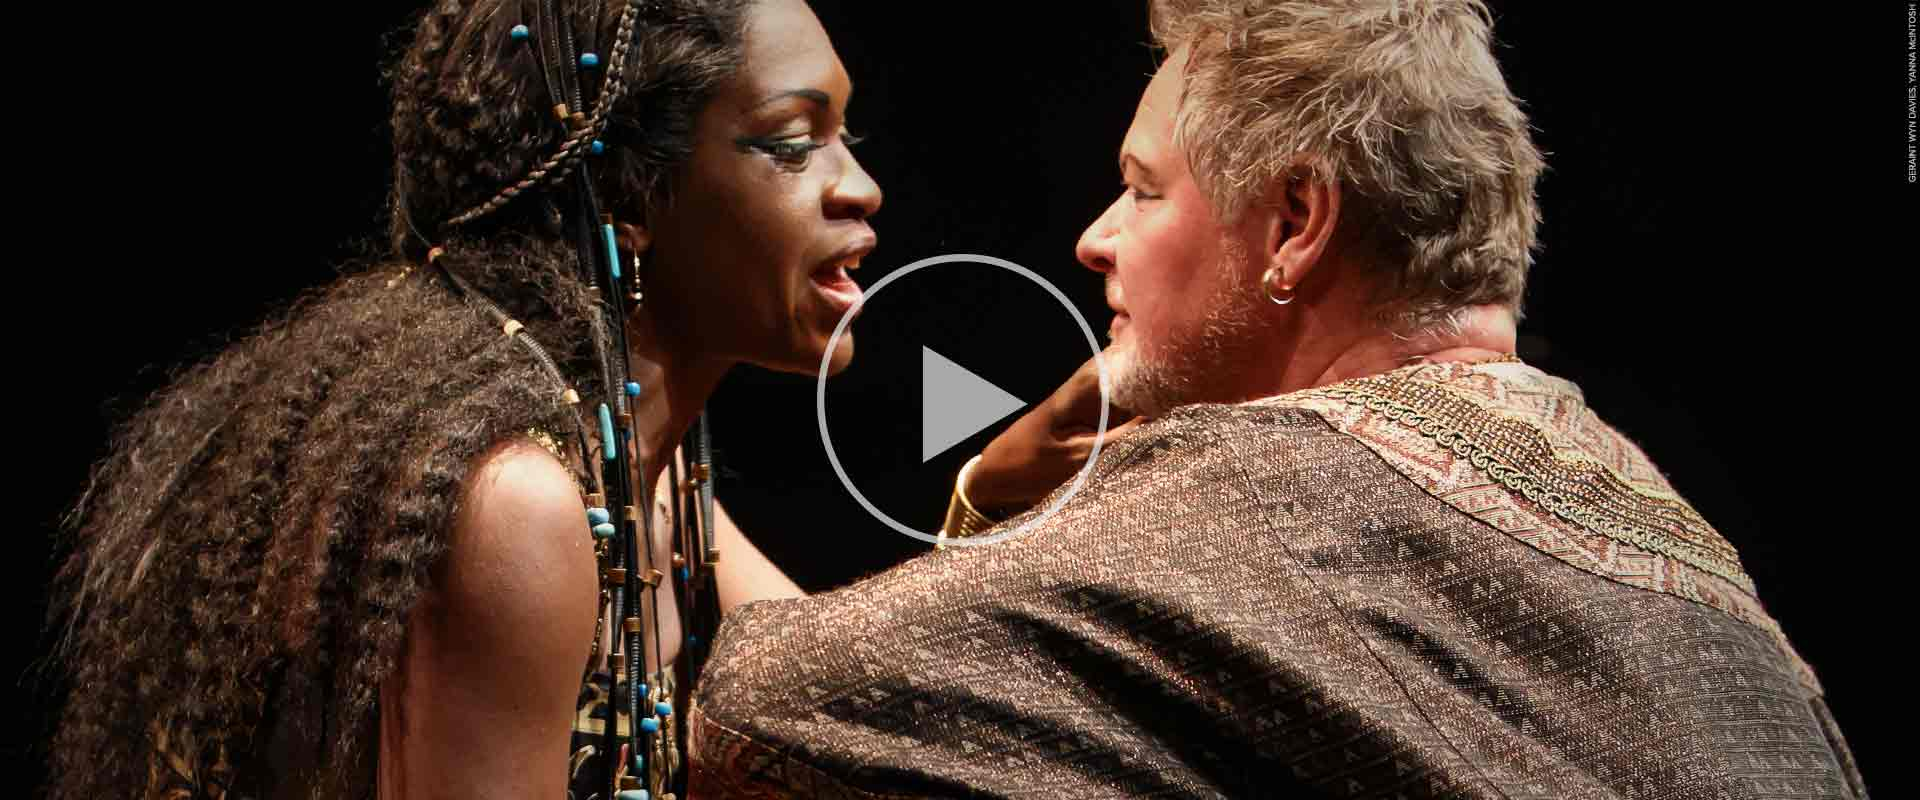 Antony and Cleopatra On Demand